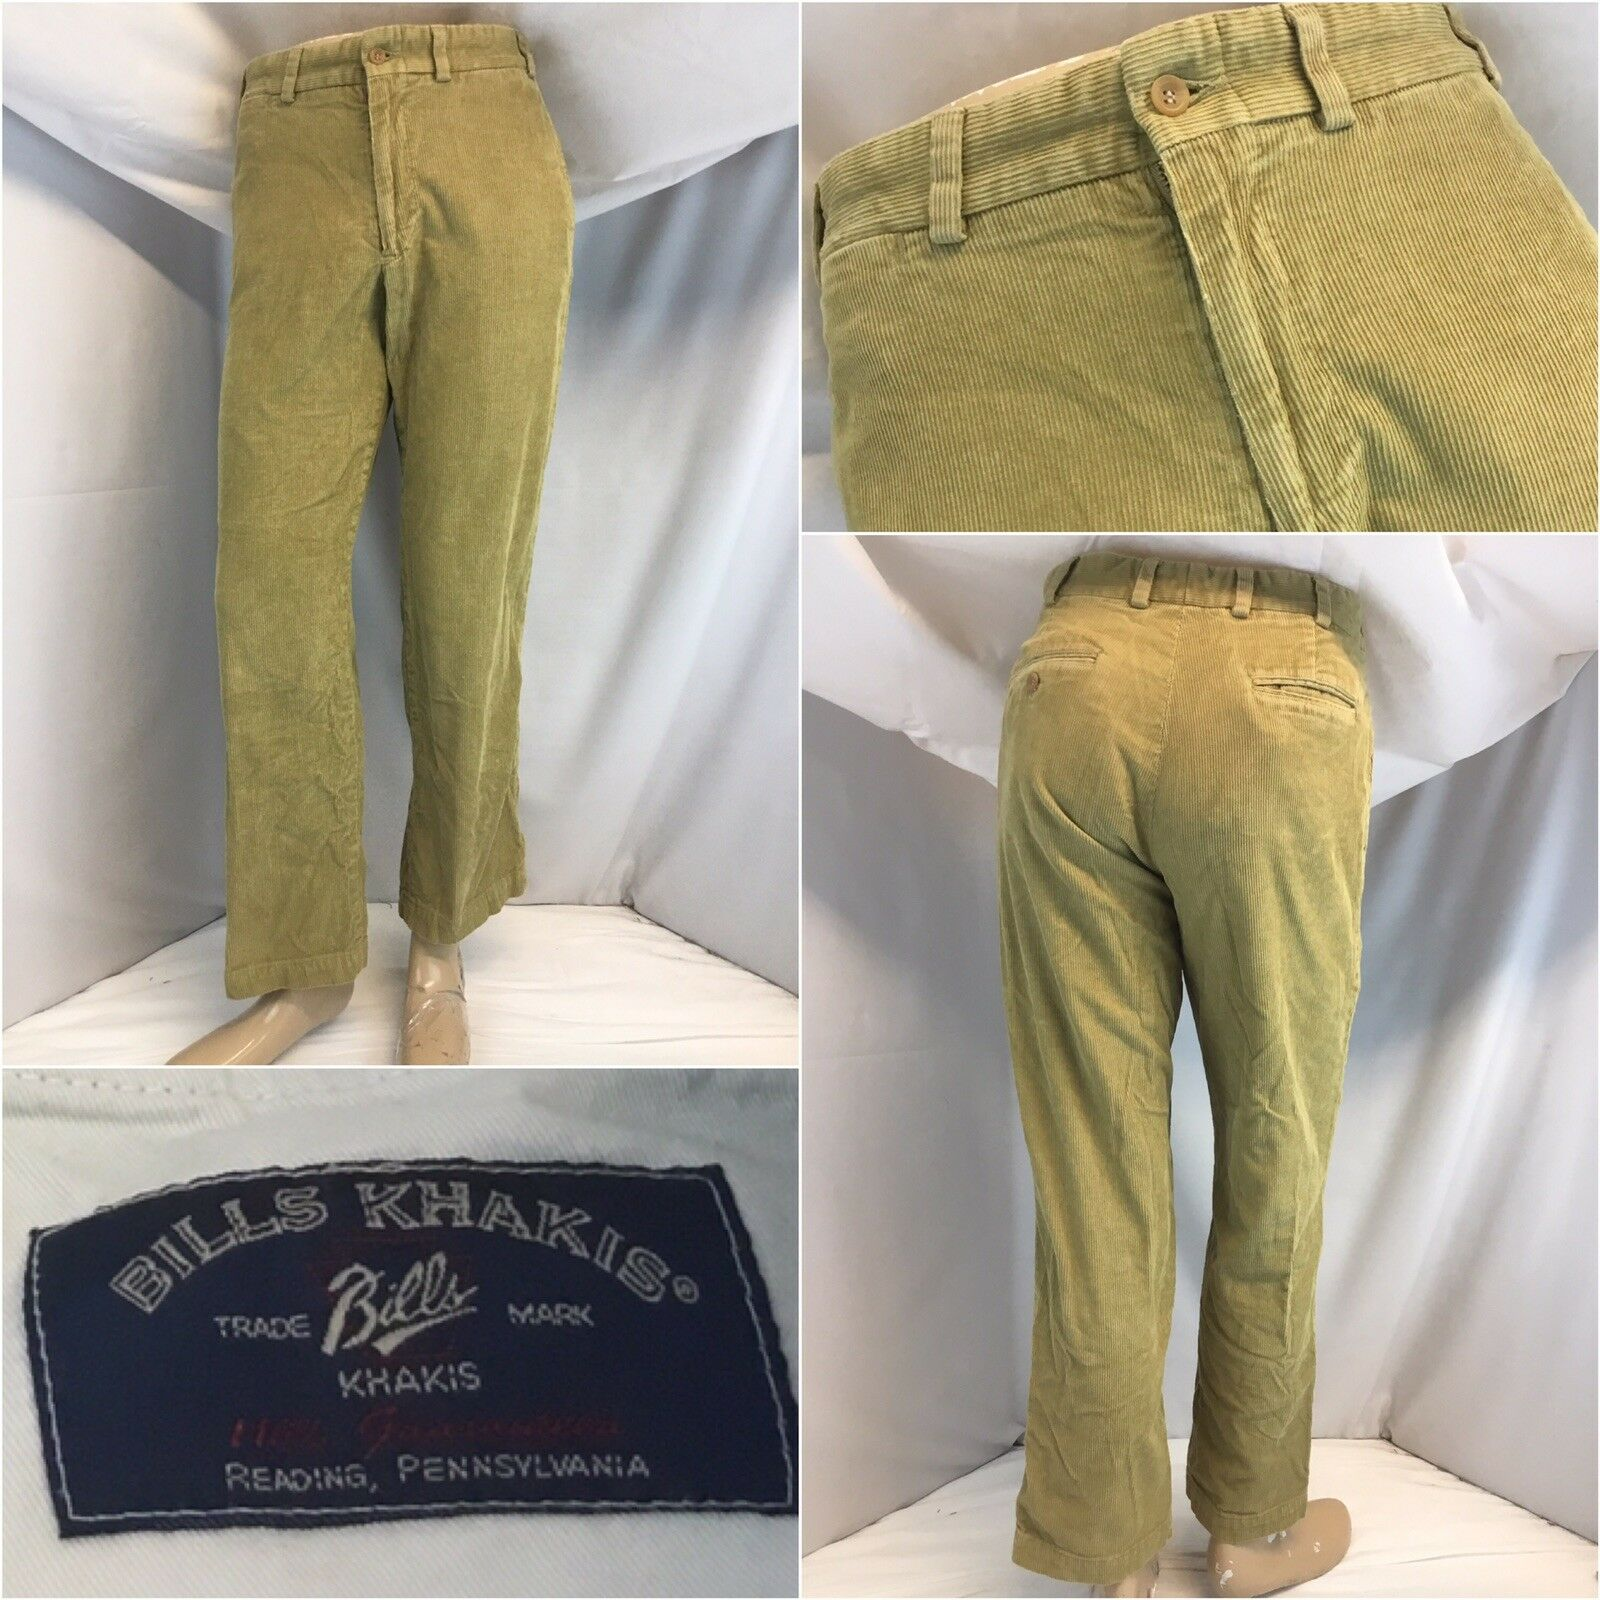 Bill's Khakis Pants 31x30 Tan Corduroy Cotton Flat Front M2 YGI L8-182